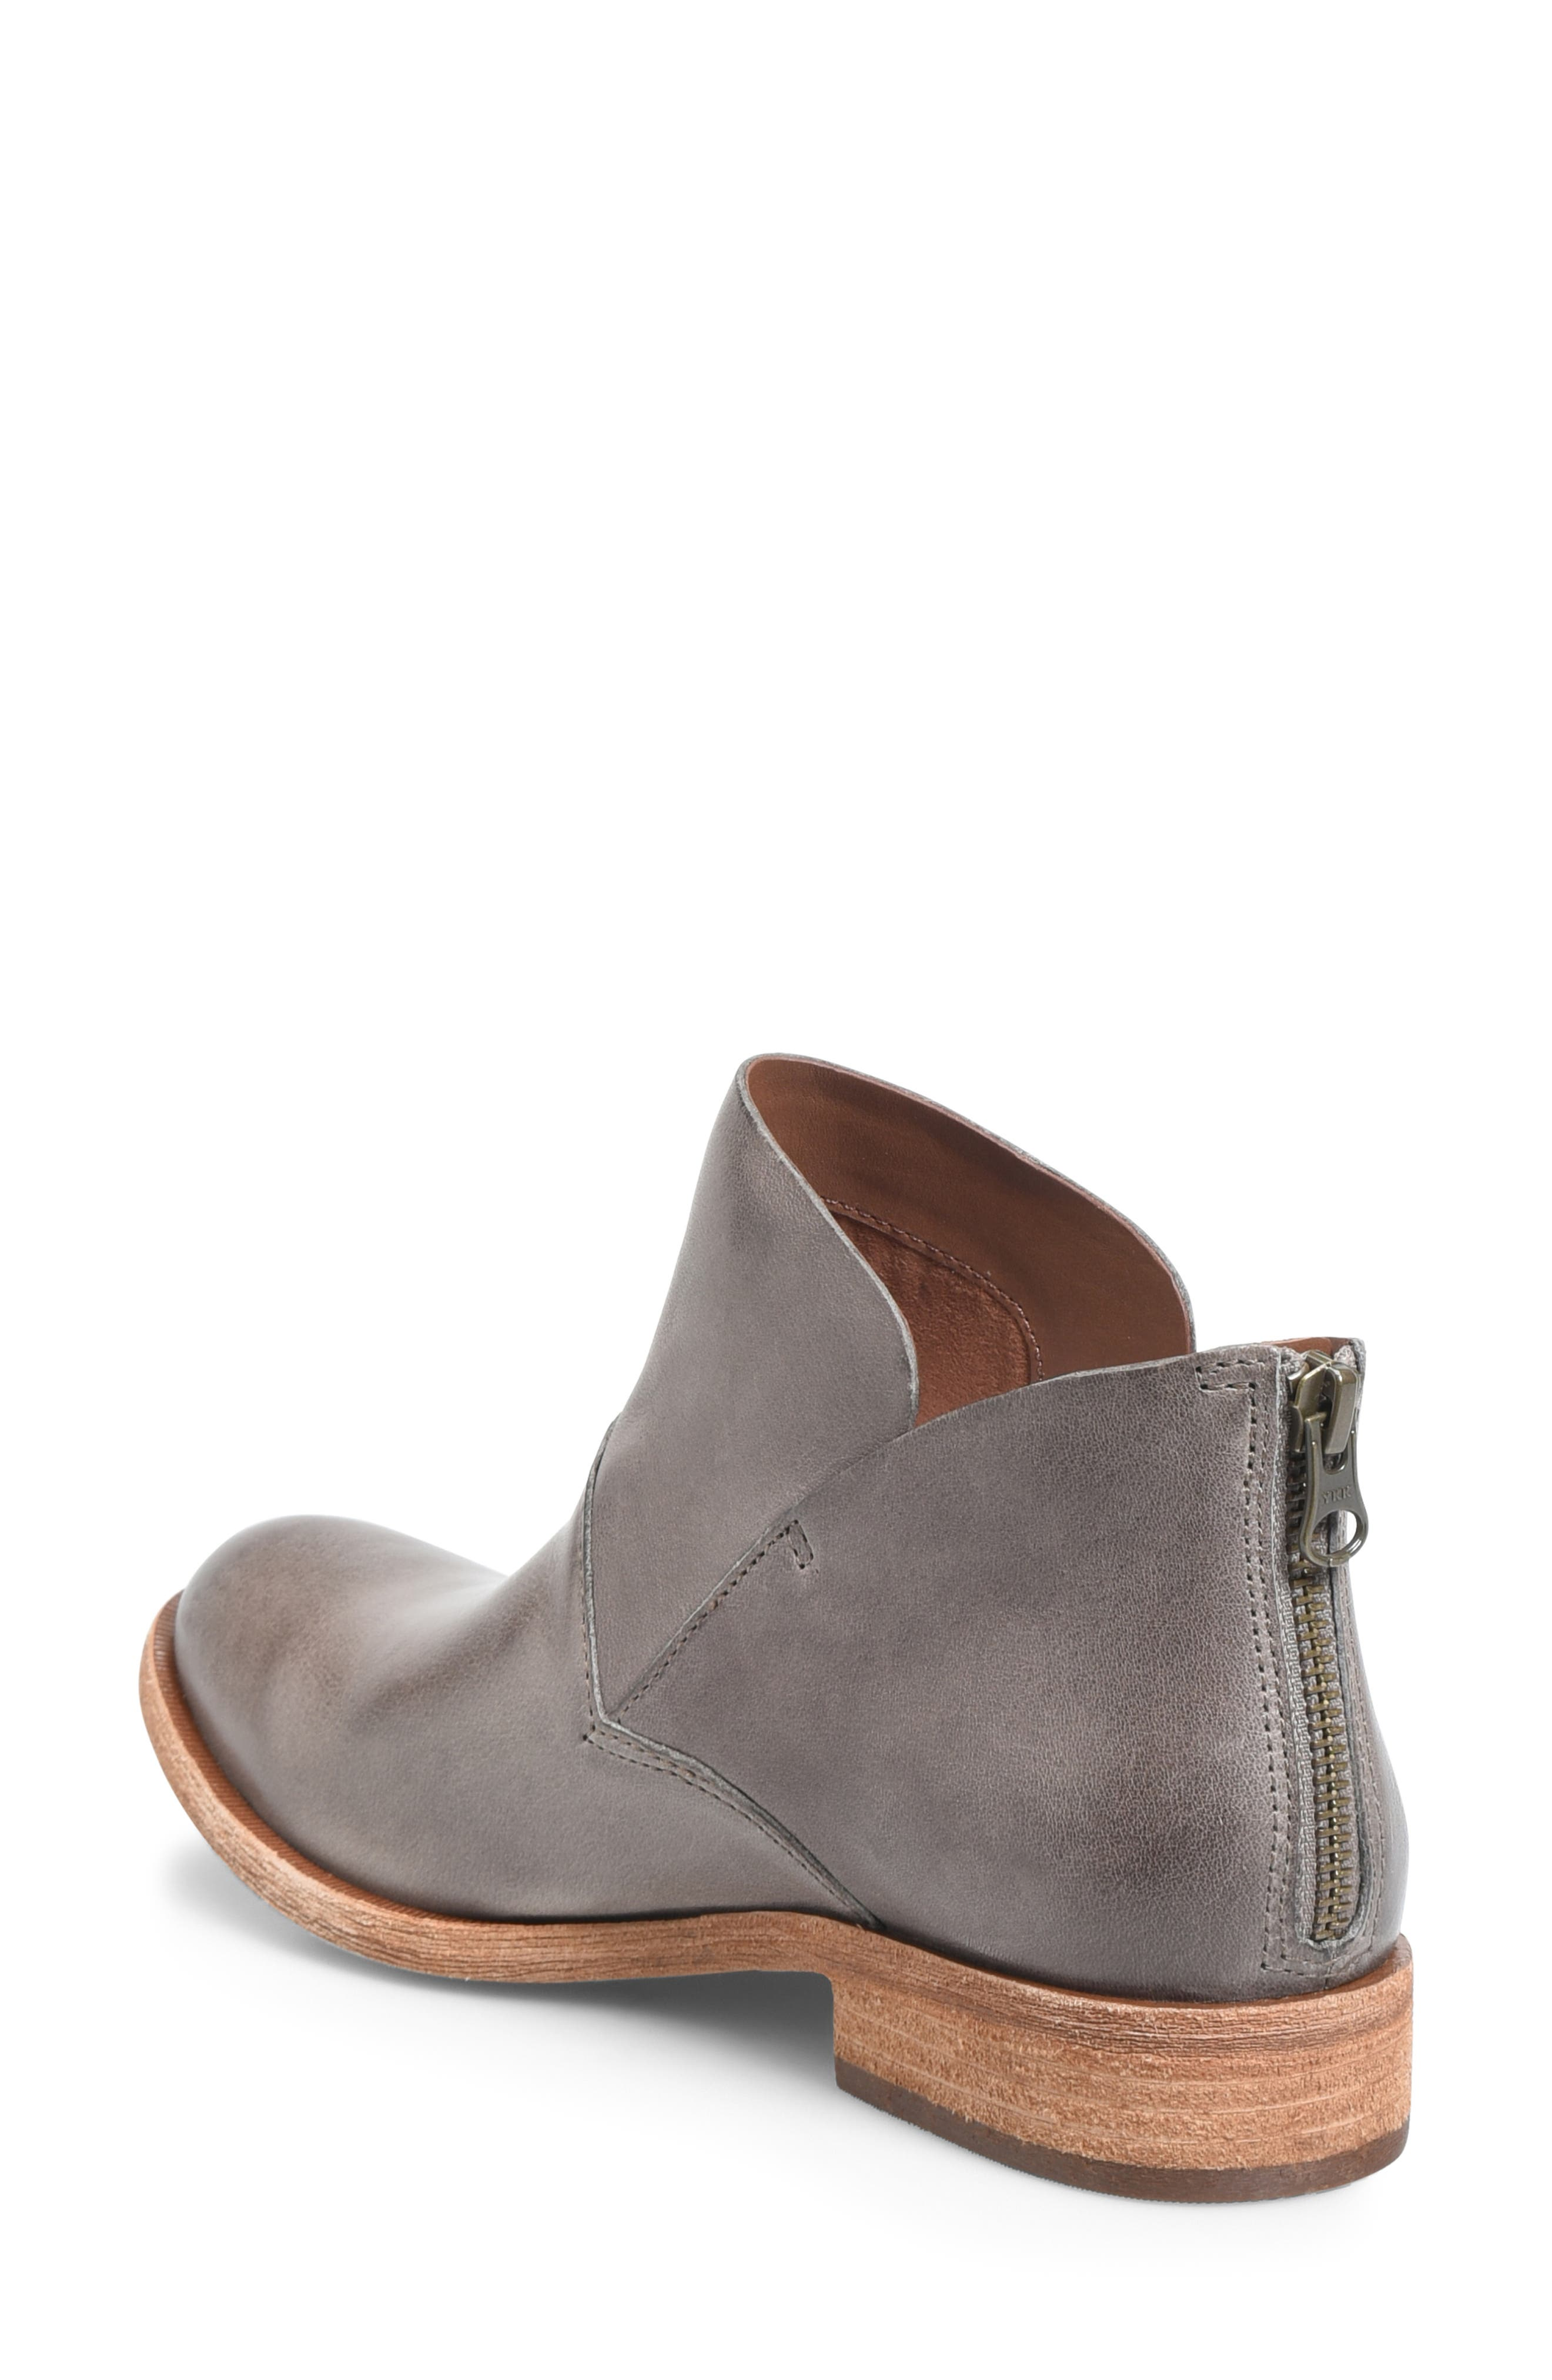 Ryder Ankle Boot,                             Alternate thumbnail 2, color,                             GREY LEATHER